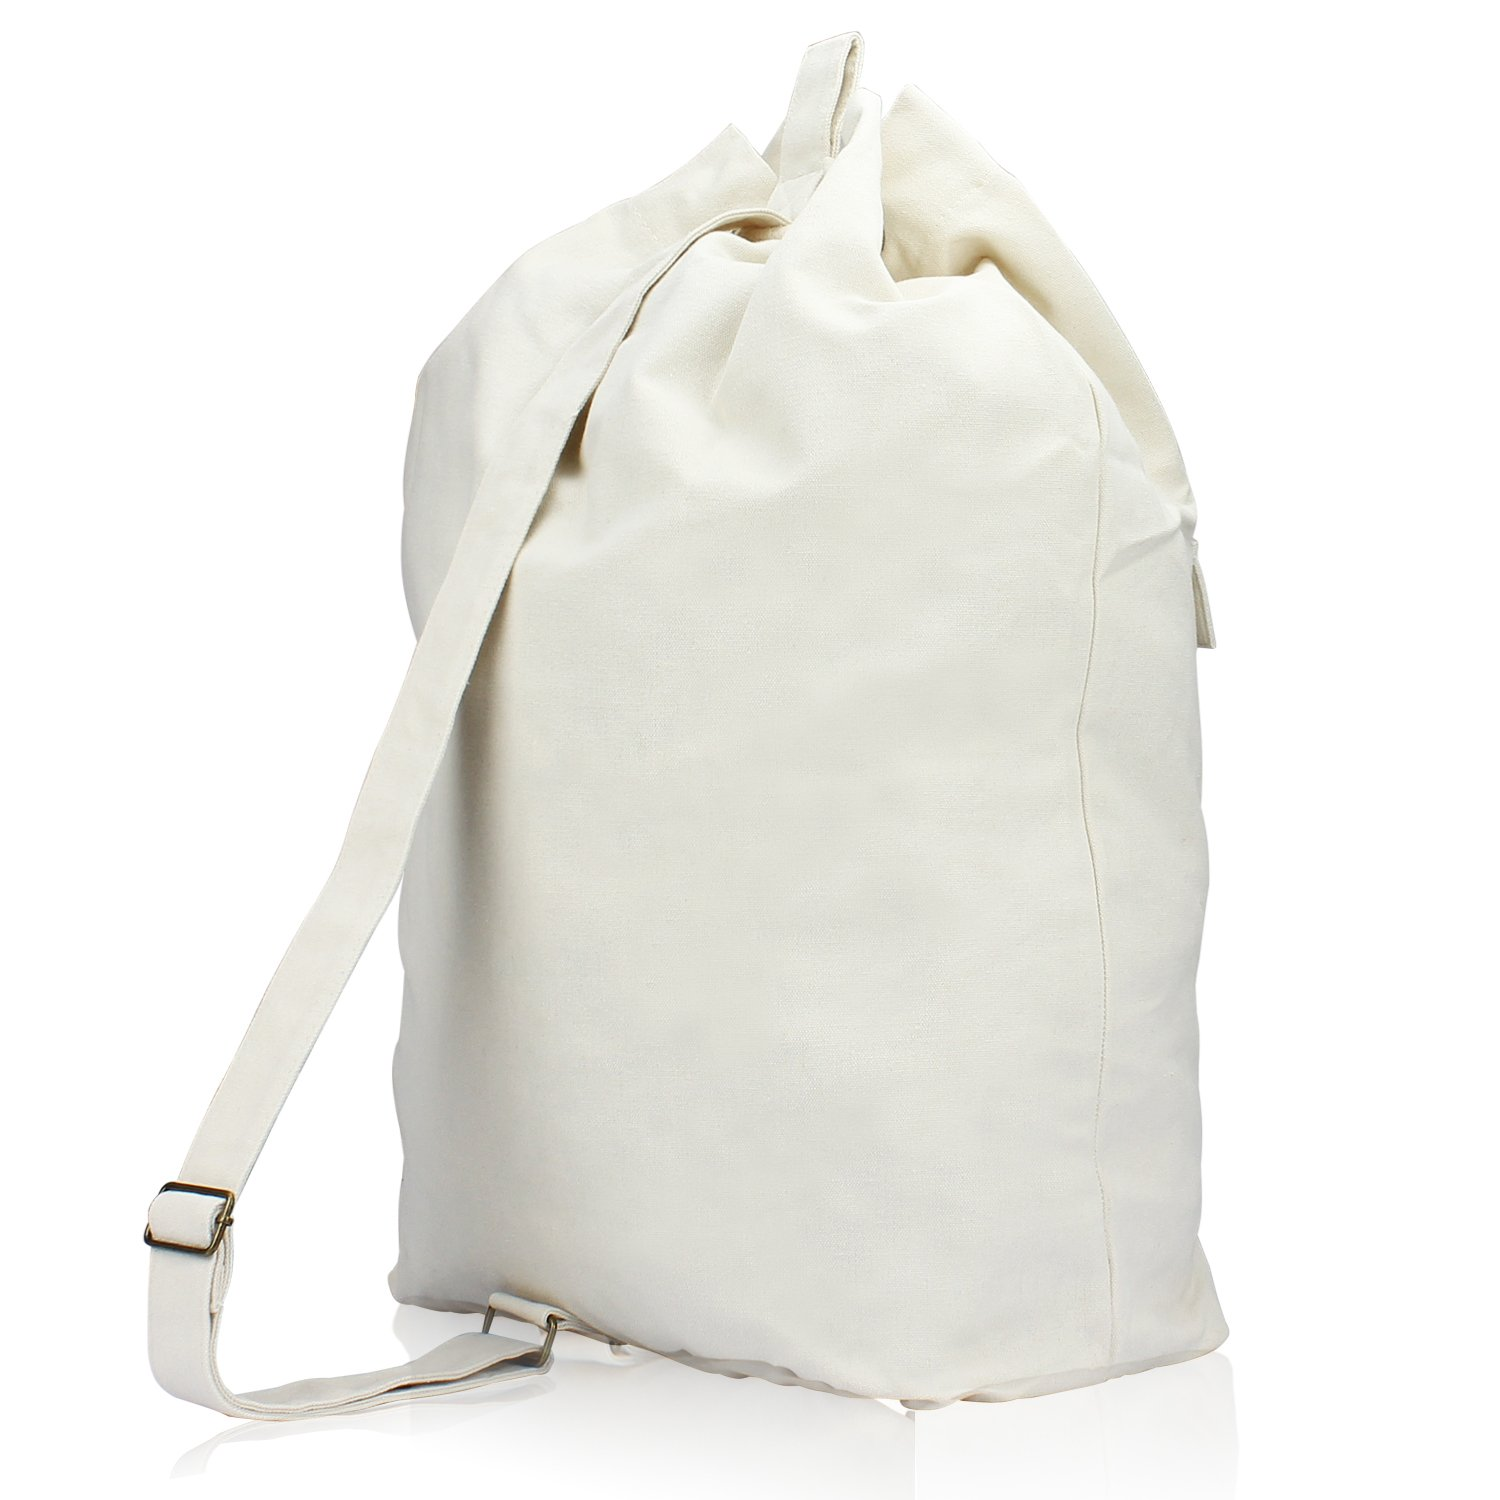 HBlife Laundry Bag Backpack Spacious Drawstring Cotton Canvas with Strong Adjustable Shoulder Straps Washing Storage Organizer Travel Bag by HBlife (Image #3)